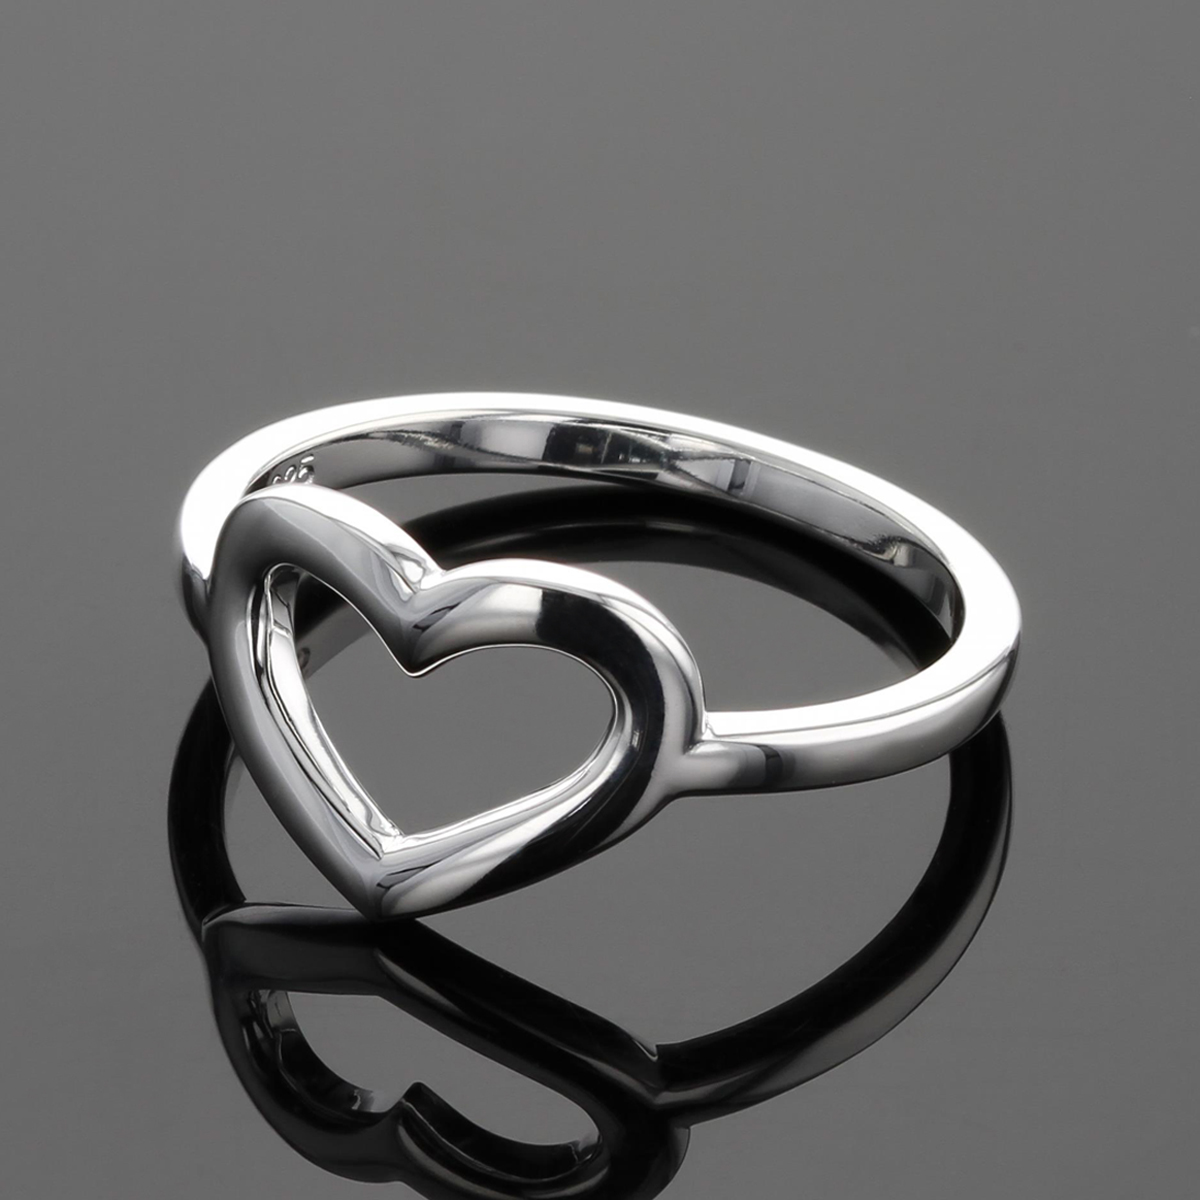 Stylish sterling silver designs from Mauritius